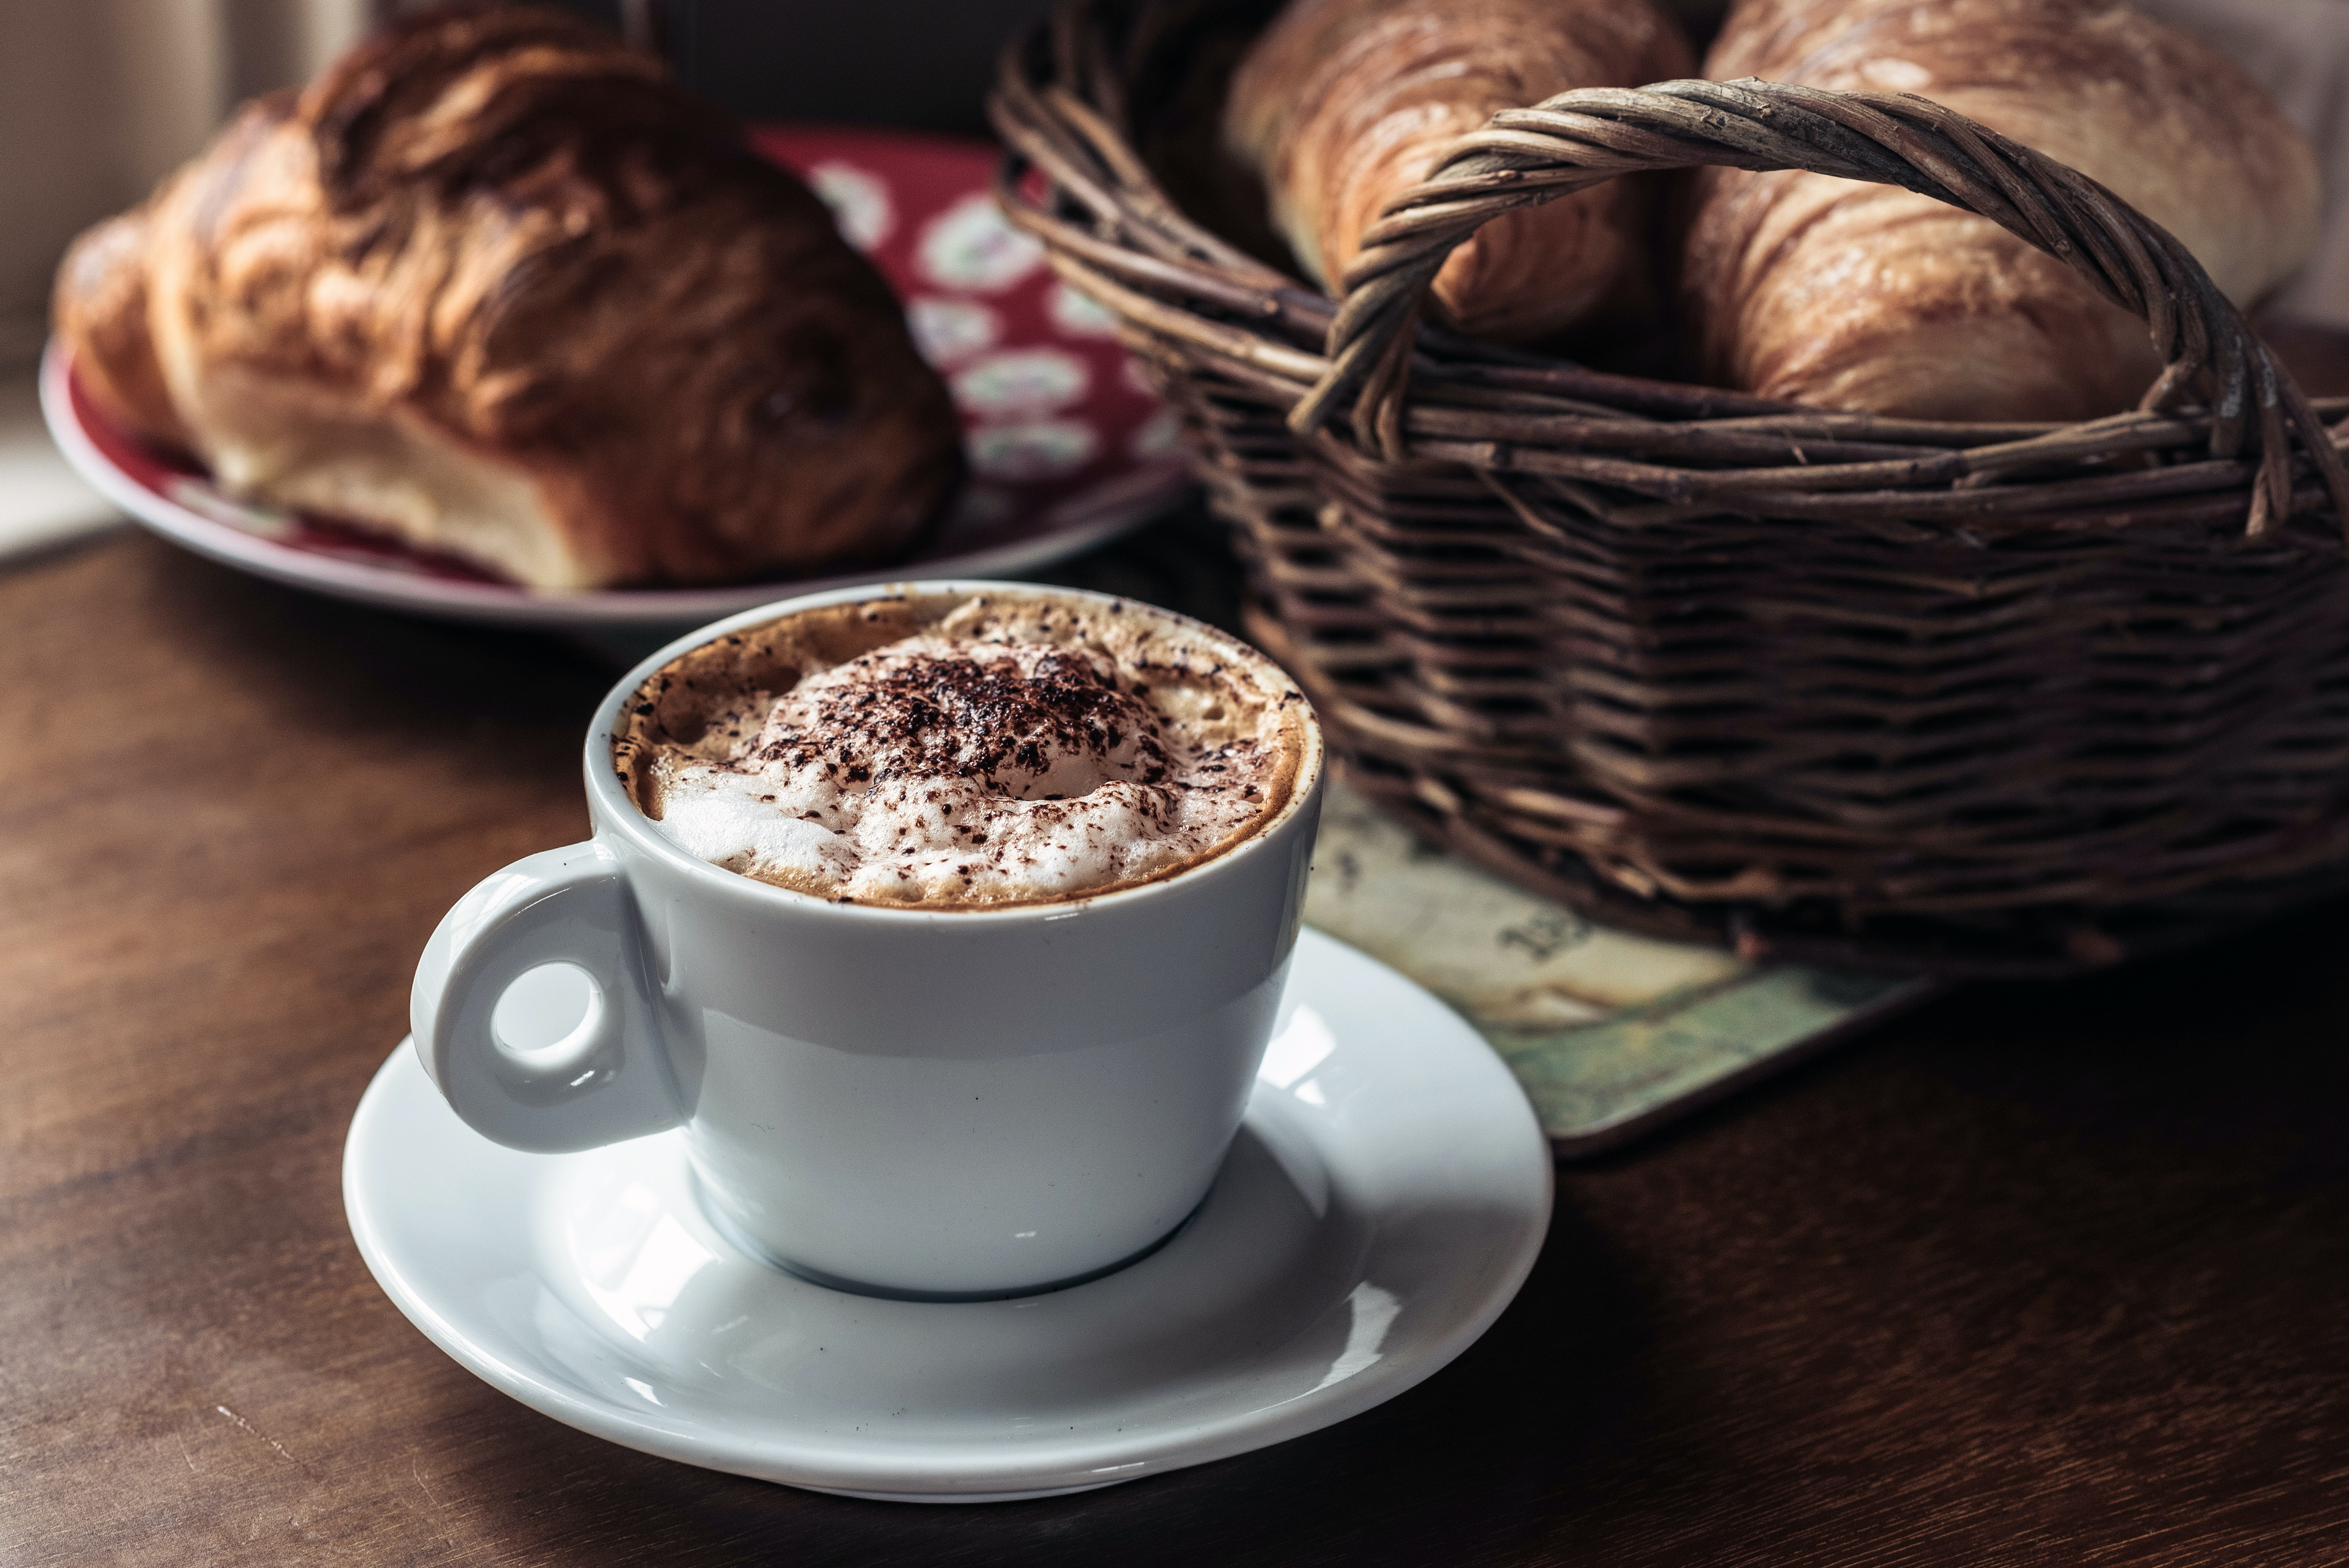 capuccino coffee on white ceramic cup with saucer beside pastry bread in basket and red plate